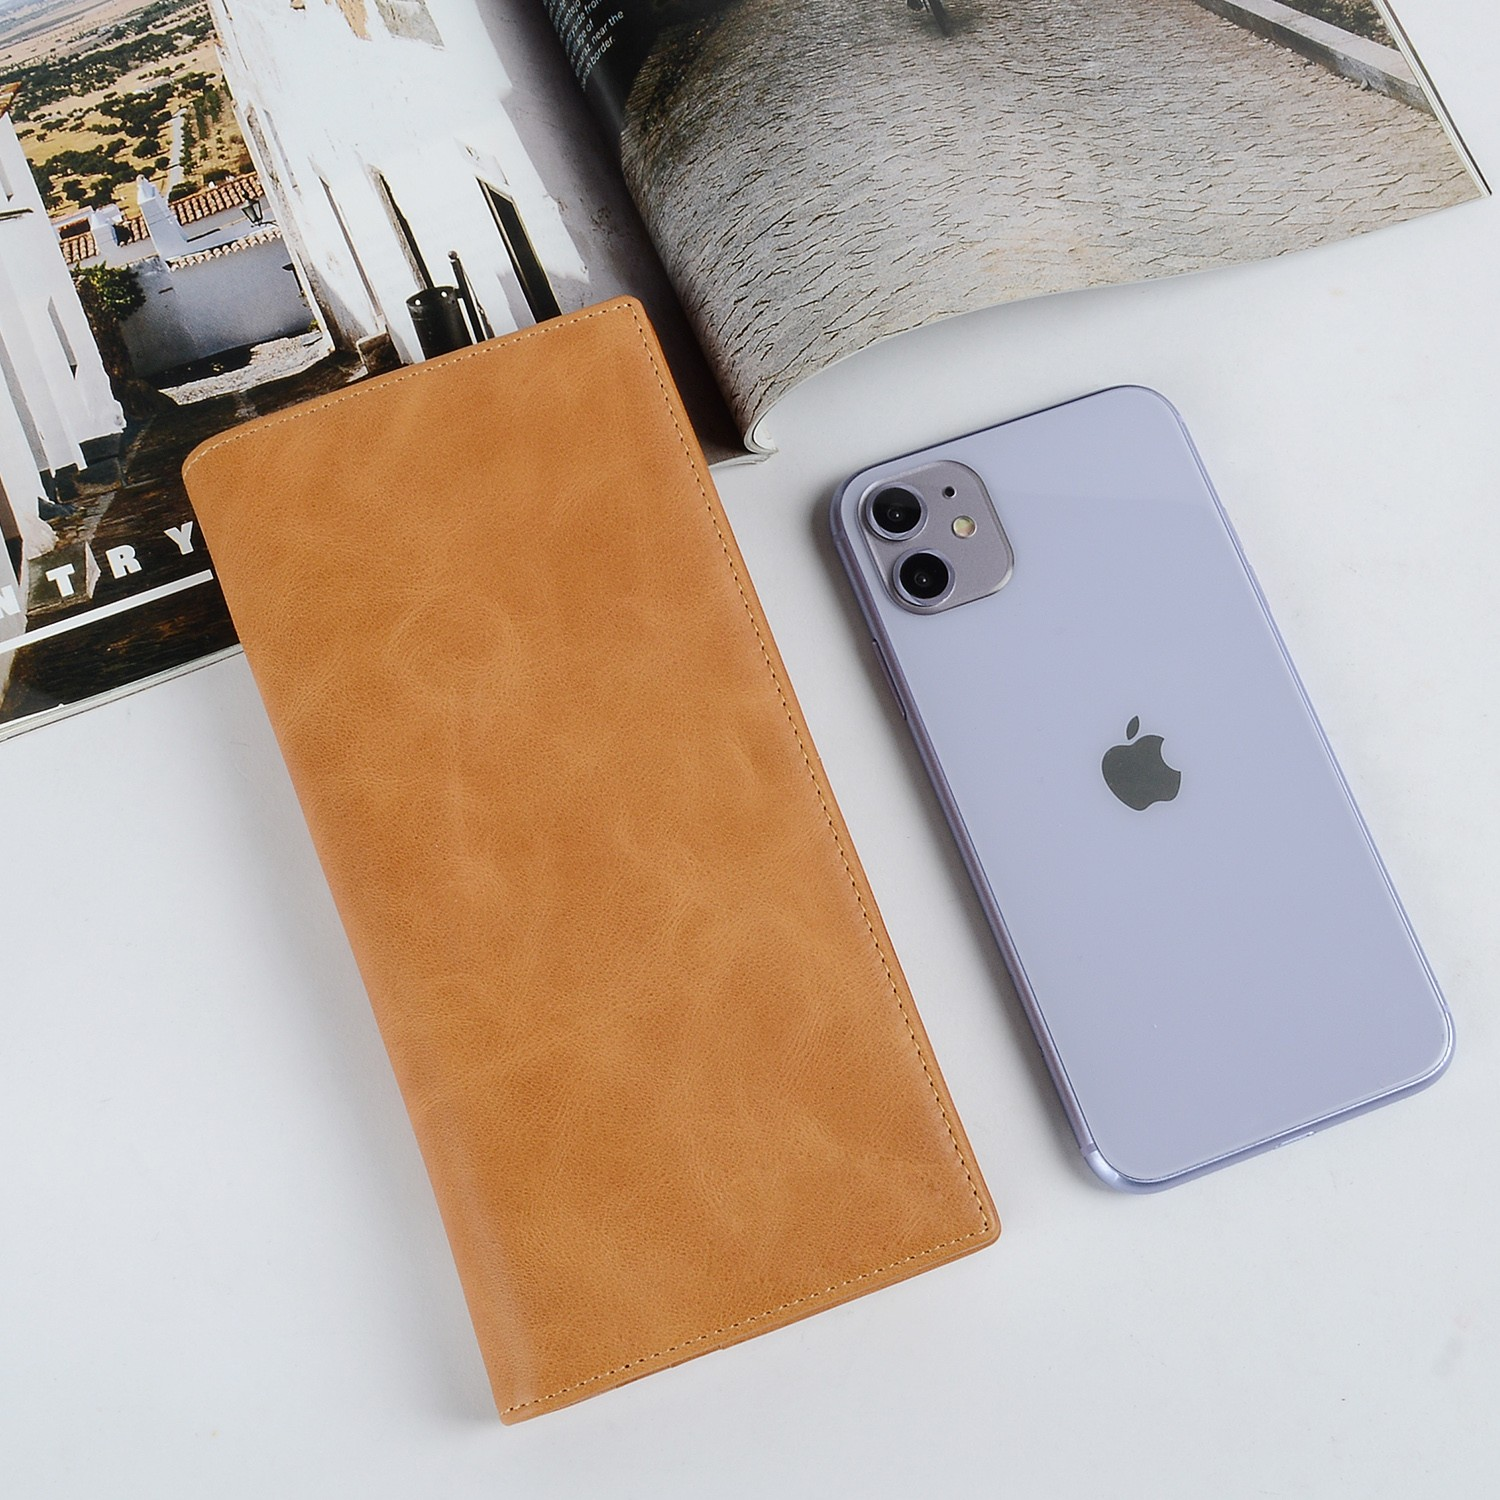 AIVI leather card holder wallet manufacturer for phone XS Max-5